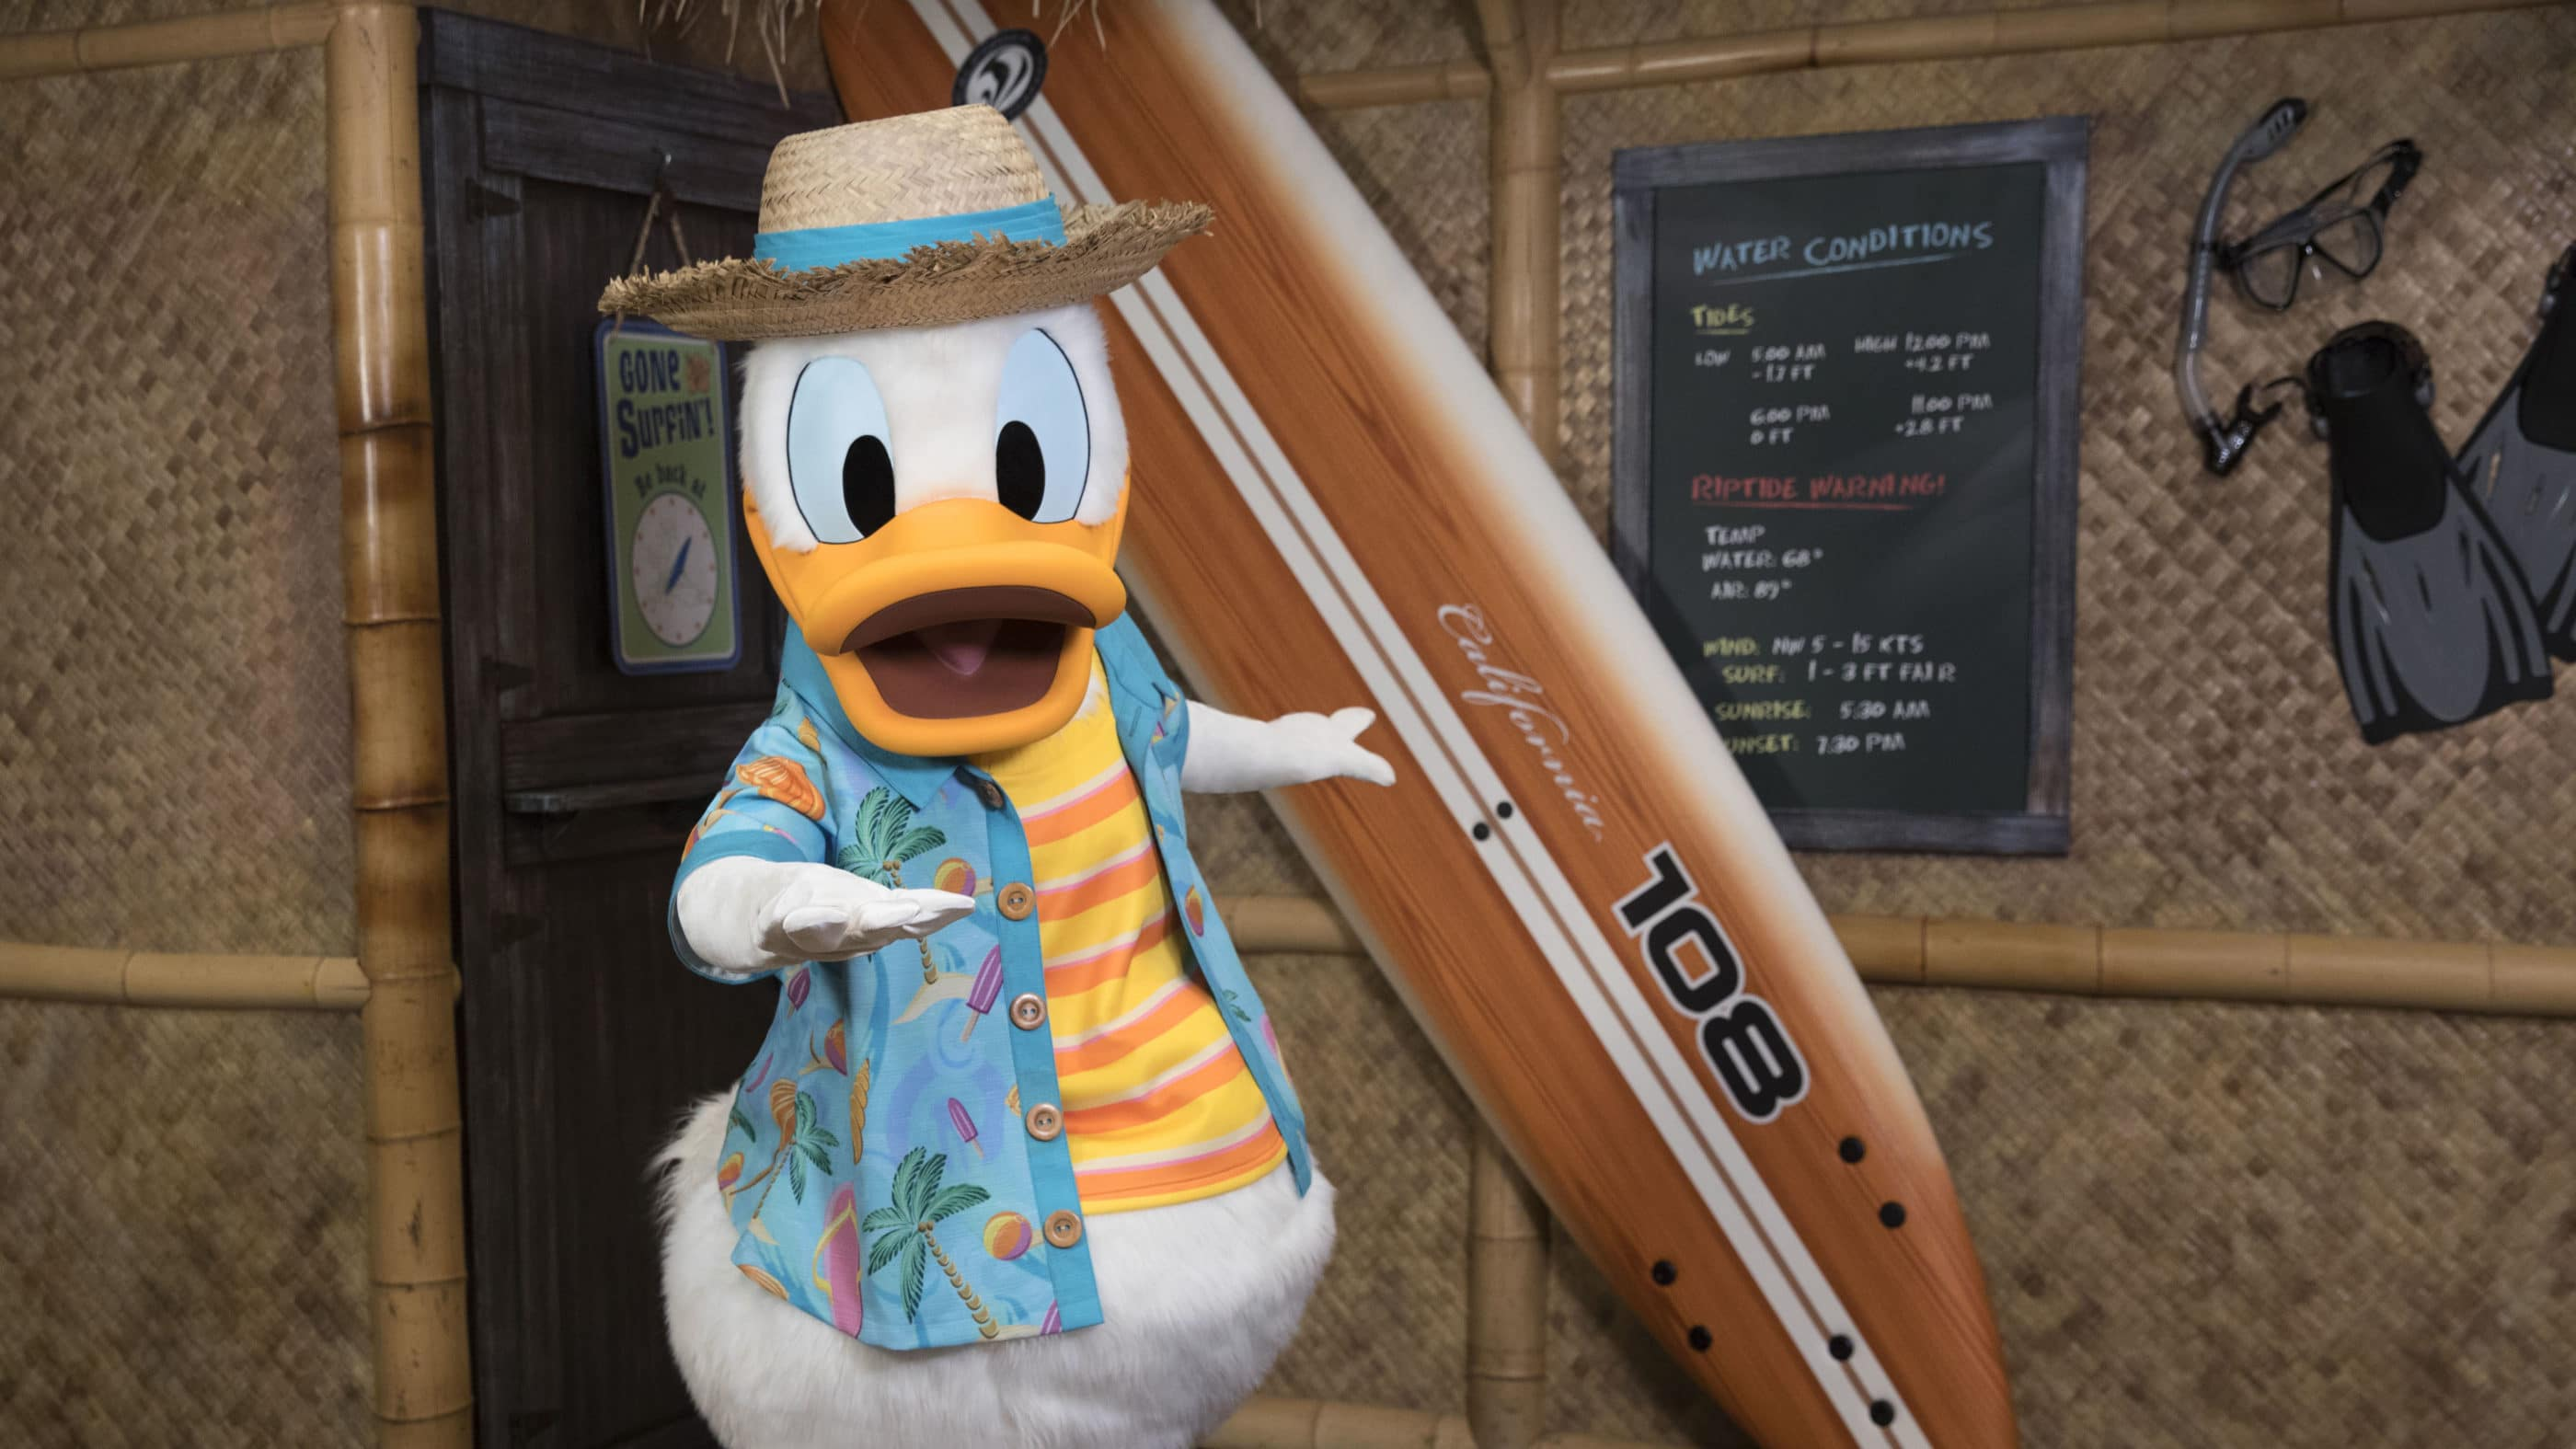 Donald Duck poses in vacation wear next to a surfboard at